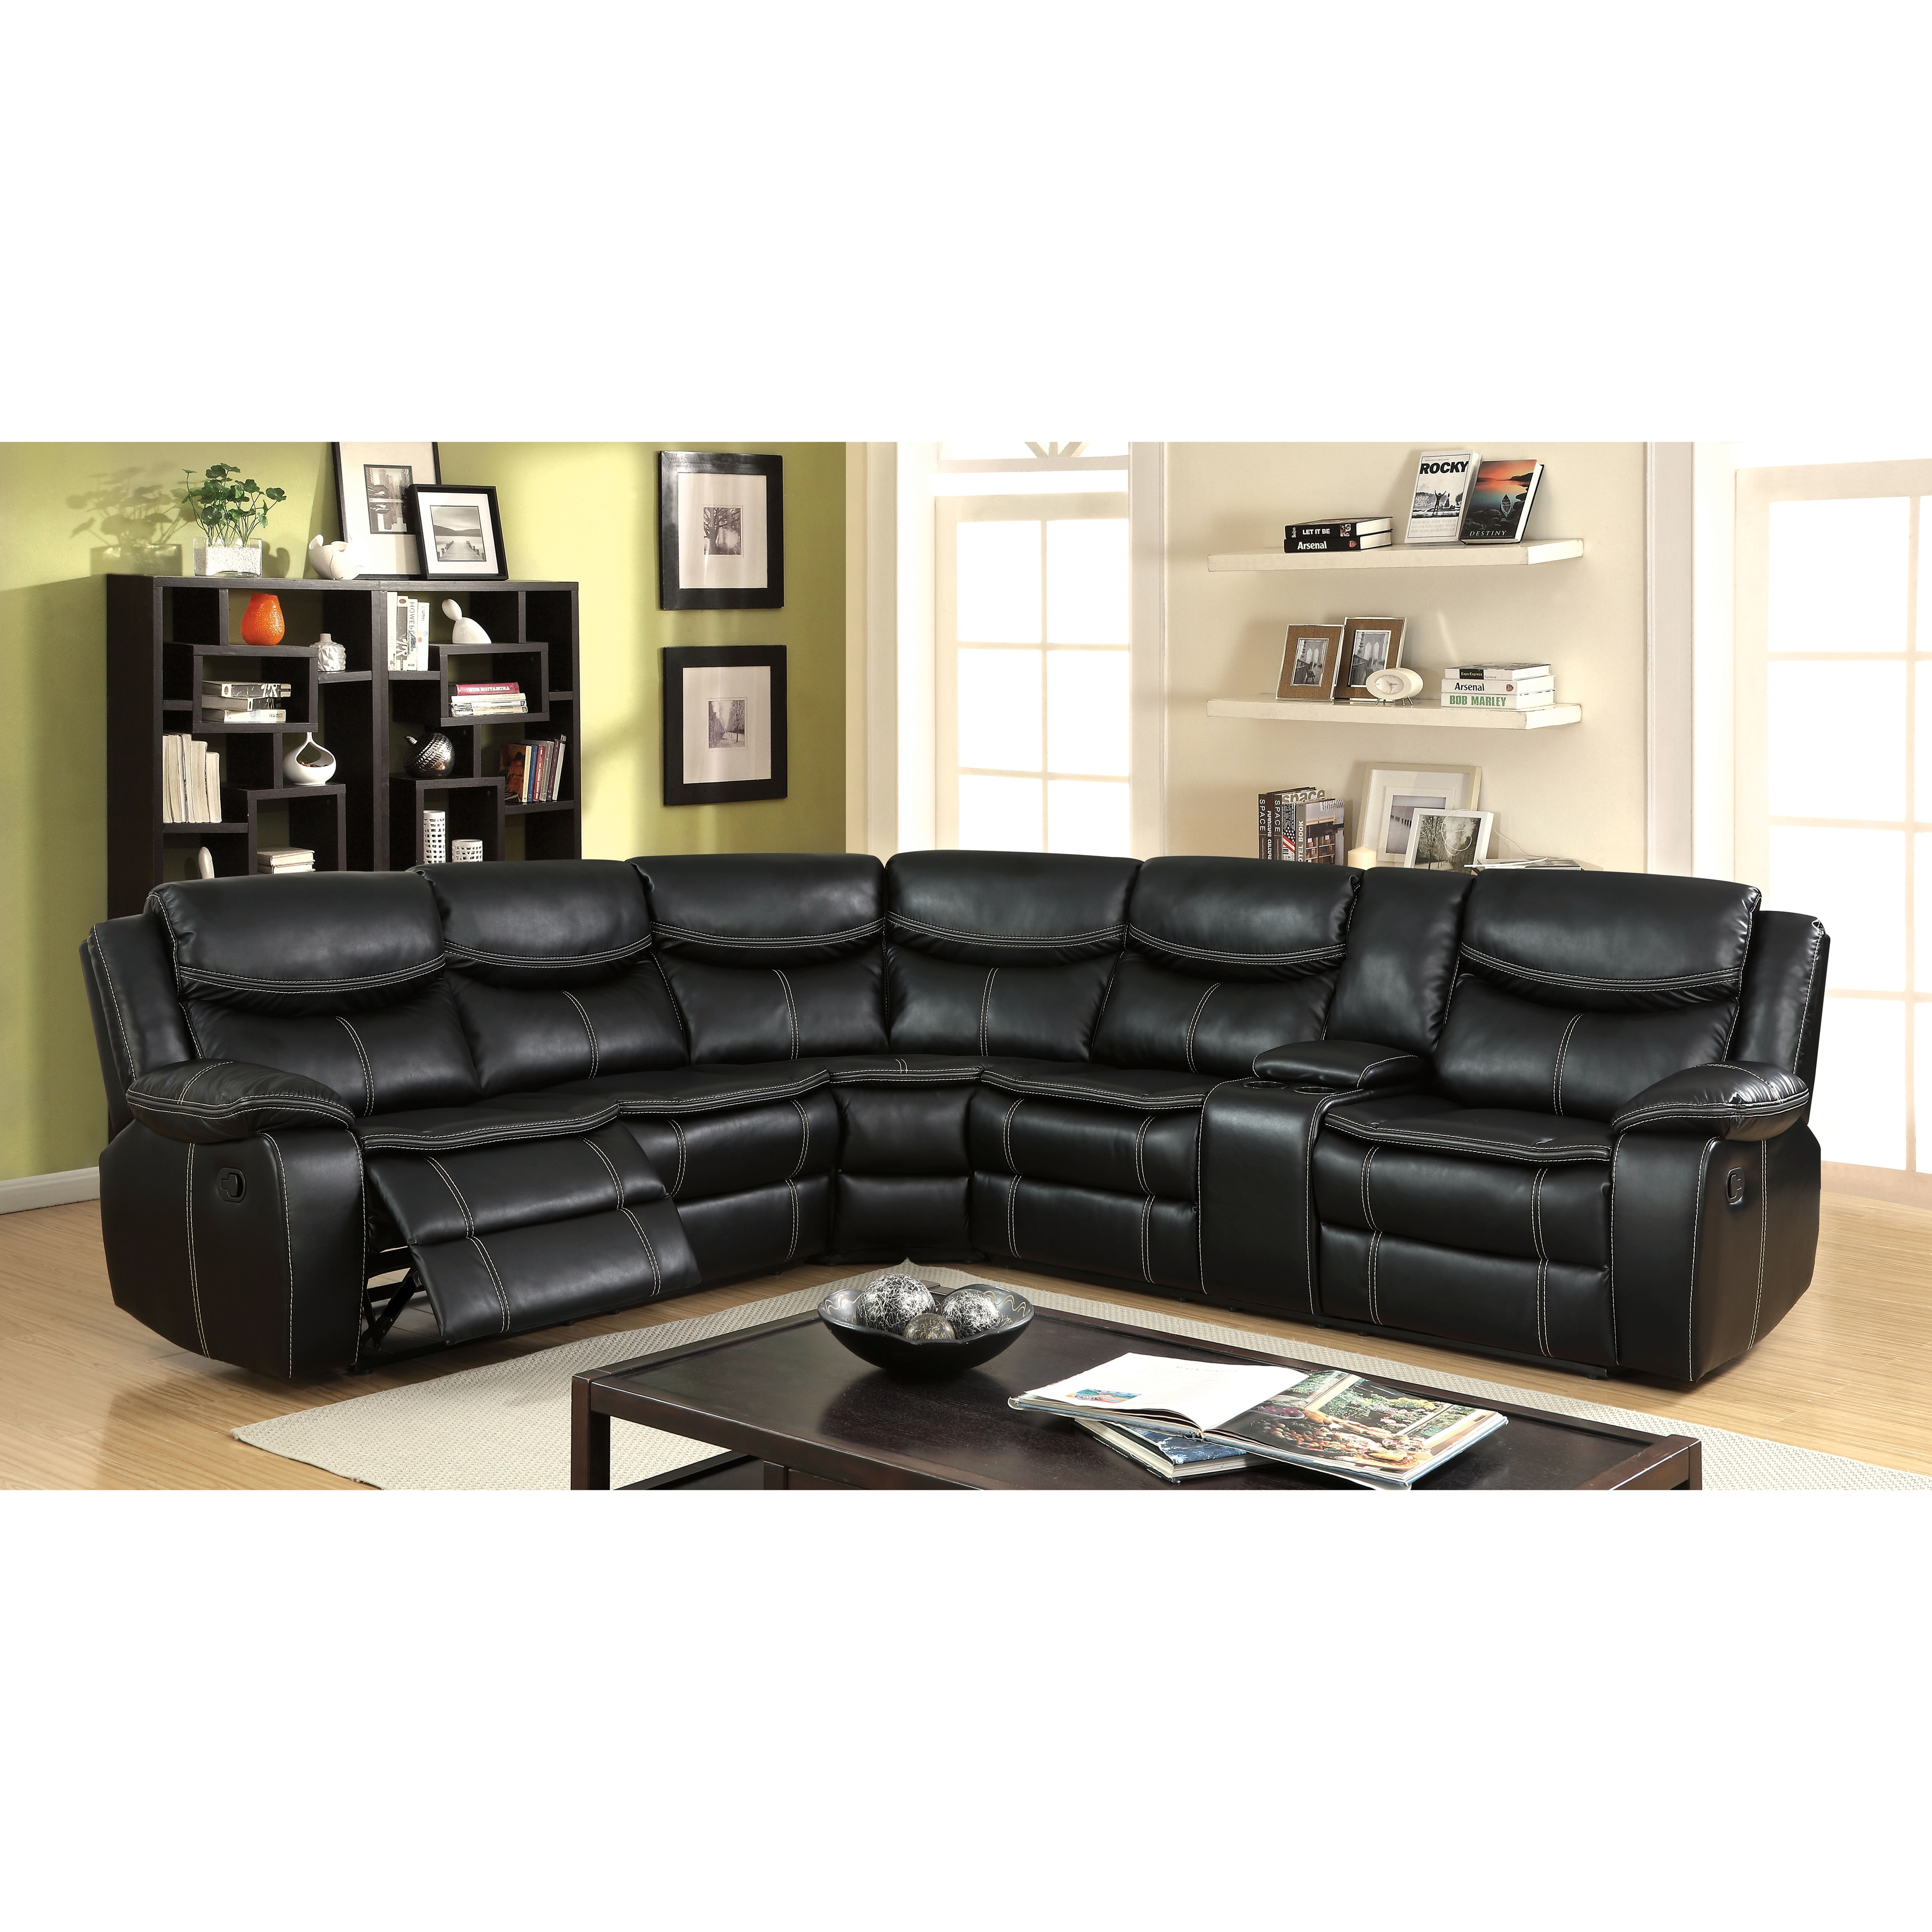 Furniture of America Garmo Black Breathable Leather L-Shaped Reclining  Sectional with Console